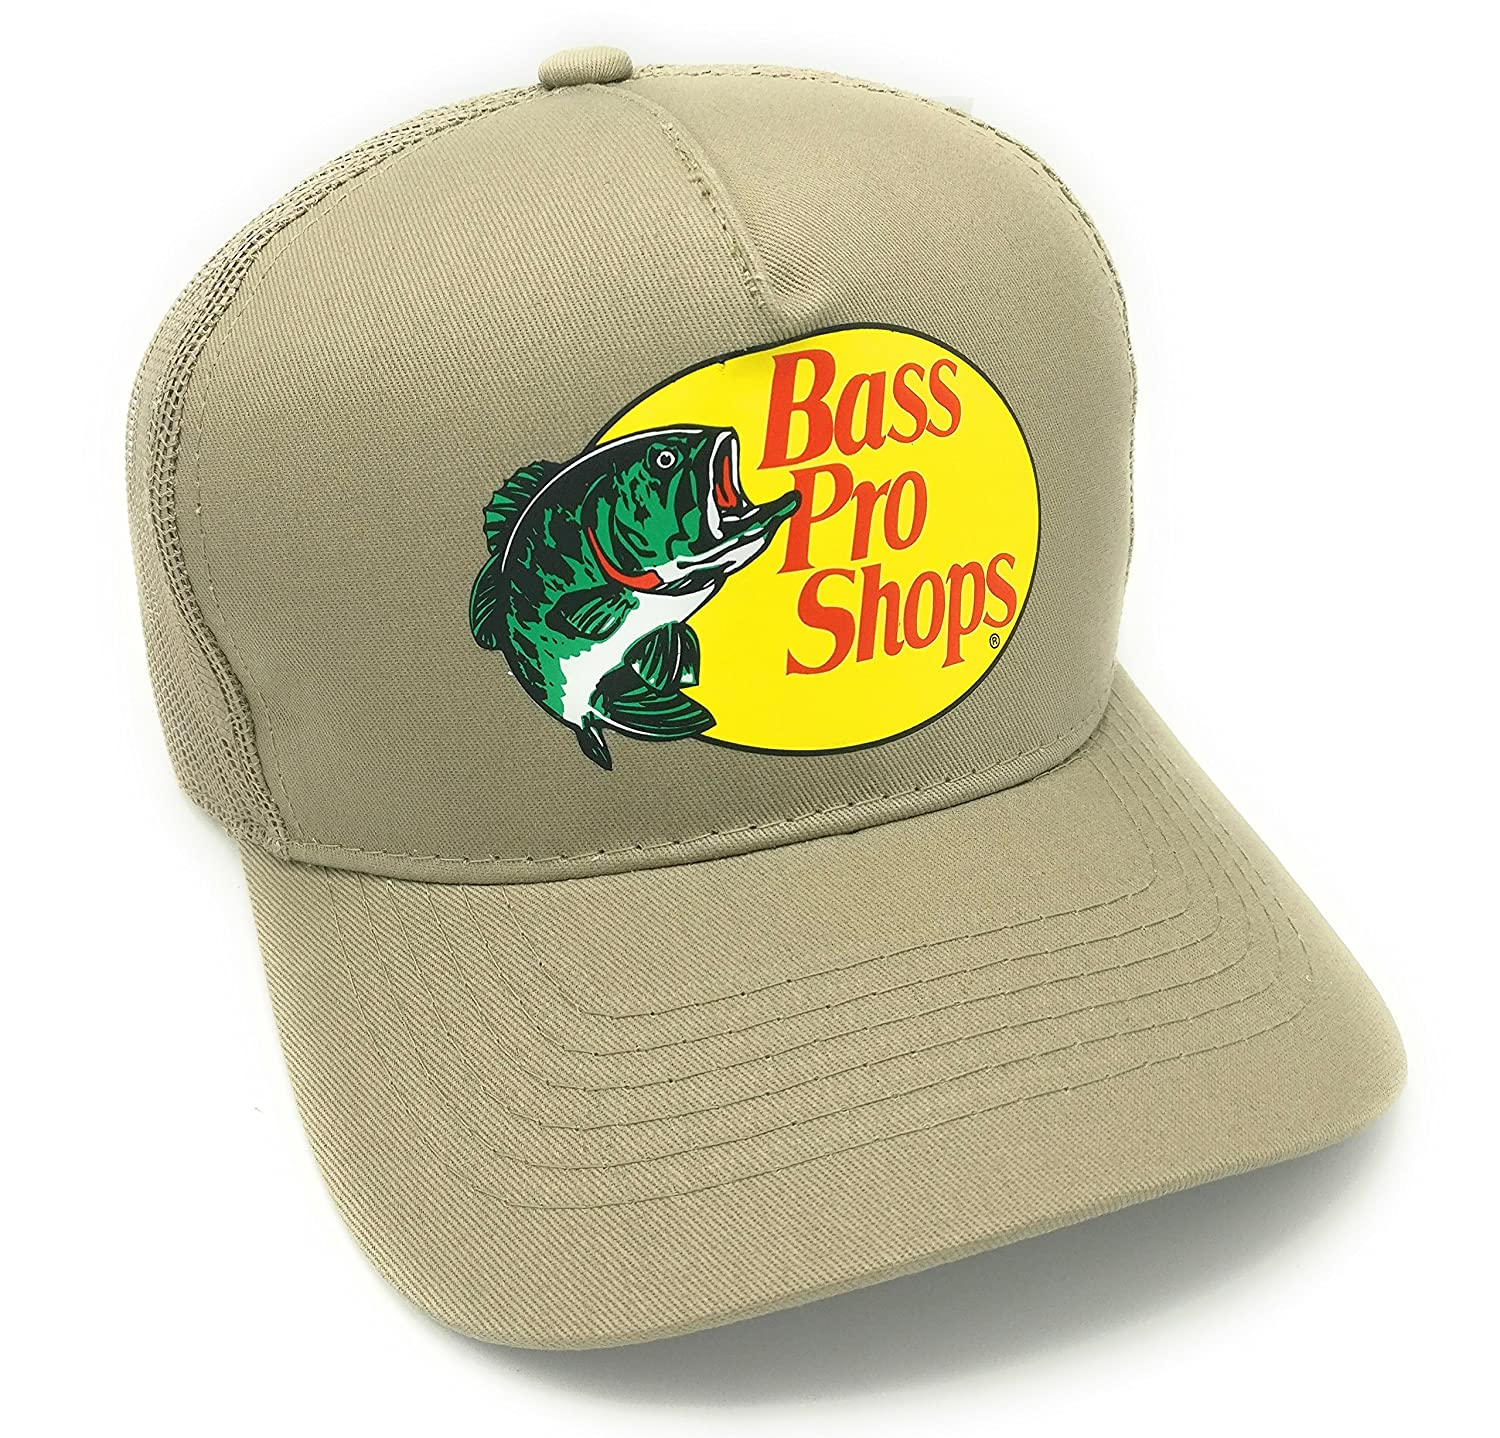 bc27f8ae4 Authentic Bass Pro Mesh Cap Fishing Hat Adjustable, One Size Fits Most,  Cool and comfortable design, Mesh backing, Wide brim